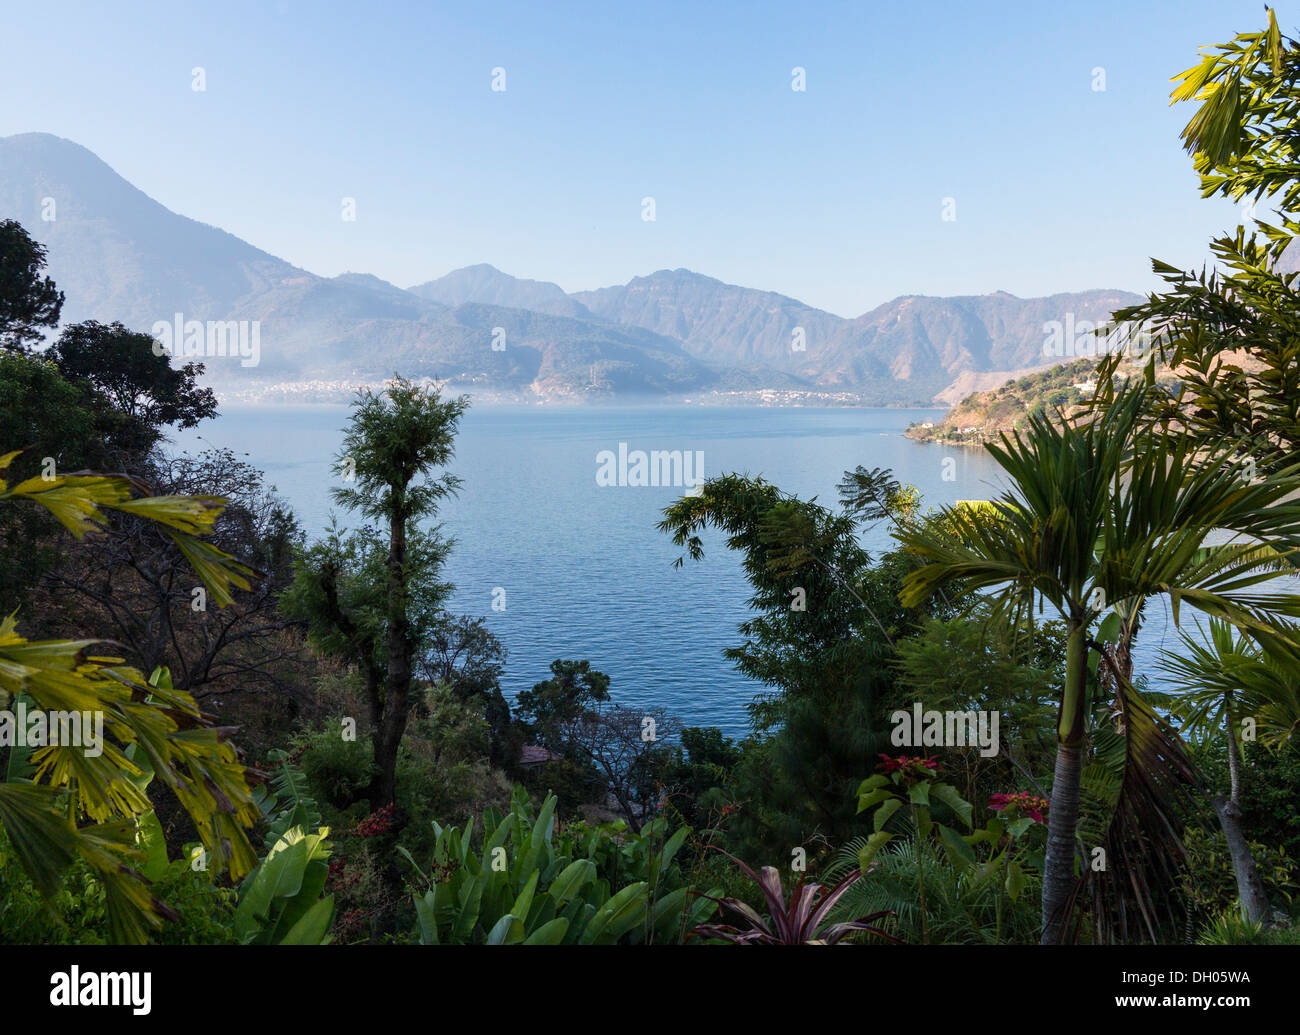 Sunrise at Lake Atitlan in Guatemala formed from volcano crater. Town of San Pedro La Laguna in distance - Stock Image